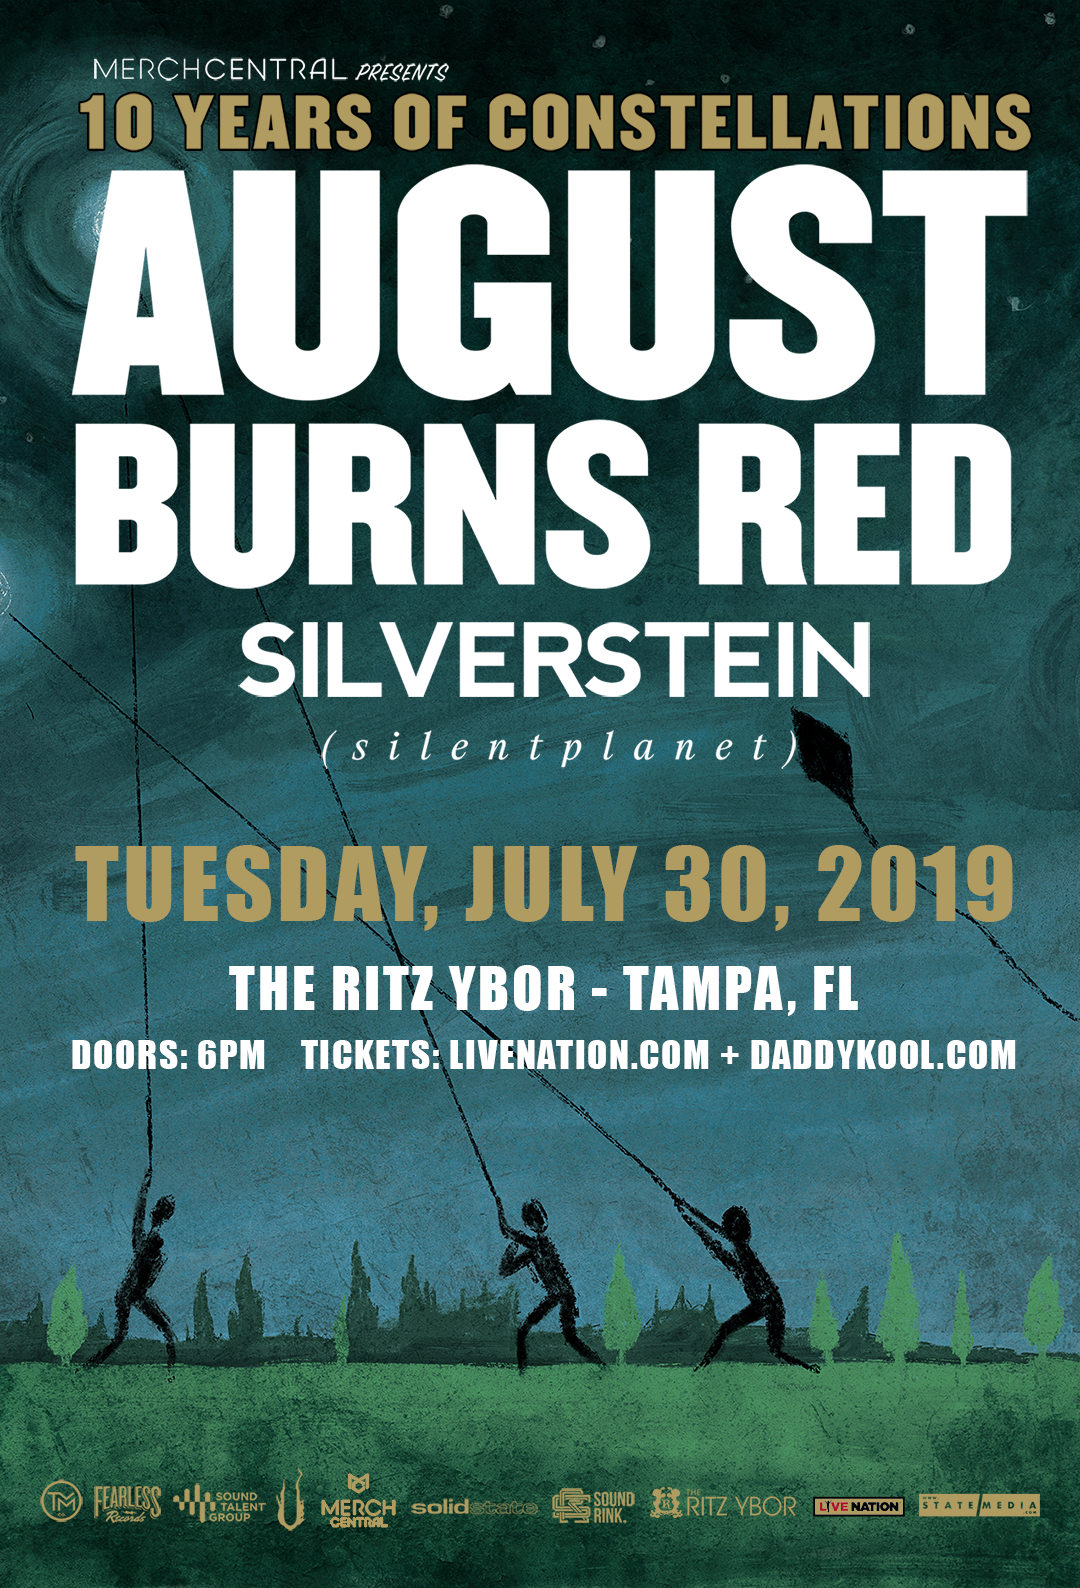 August Burns Red: 10 Years of Constellations Tour at The RITZ Ybor – 7/30/2019